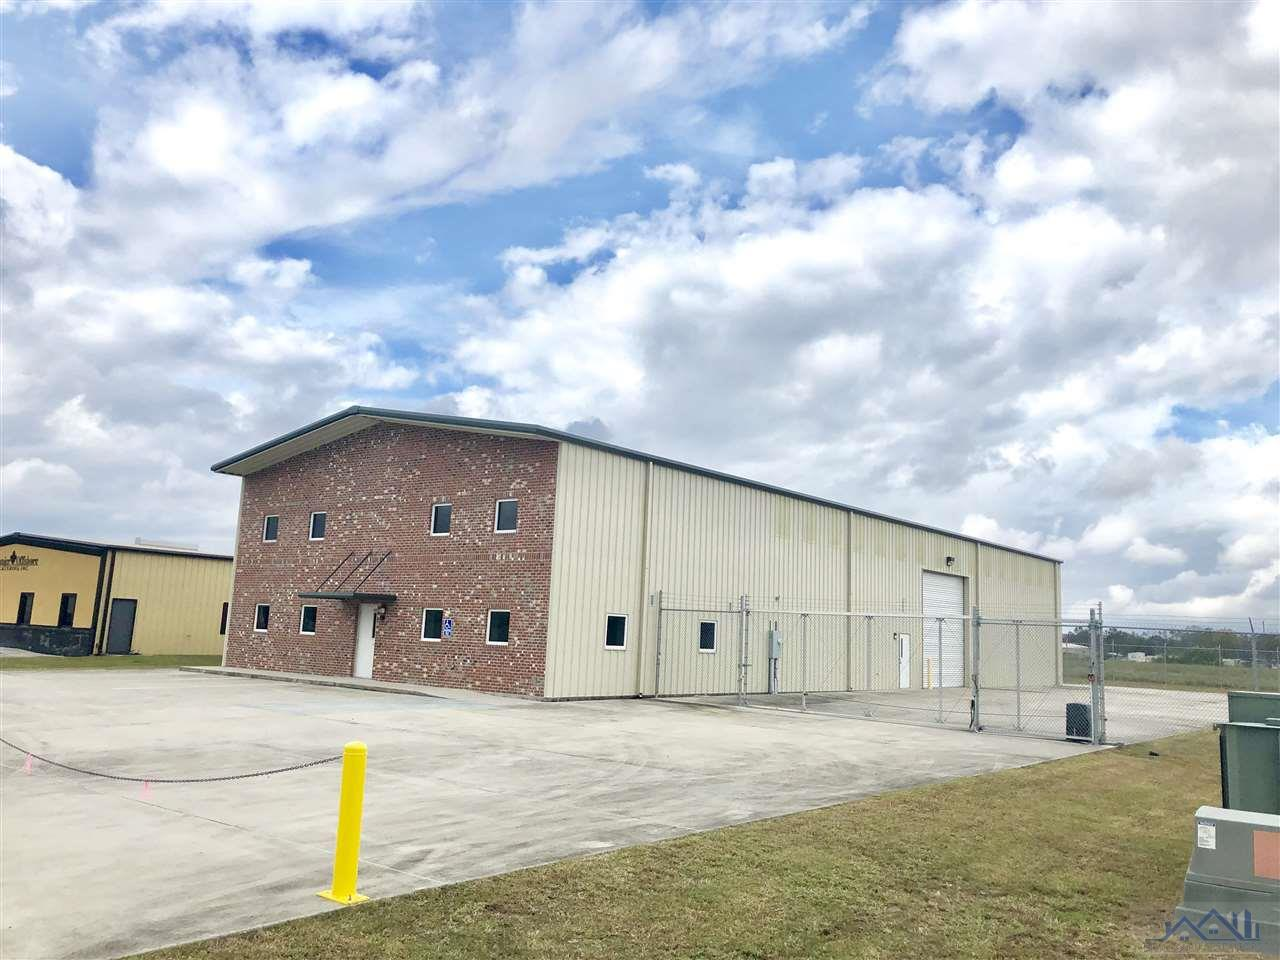 GREAT Commercial / Industrial Building in a GREAT location!! Well maintained, very close to HWY 90. This building was designed for up to a 5 ton overhead Crane.  High elevations, nice fenced in loading area with electric slide Gate and very functional office space and warehouse. Building has a loft with 1,500 sq. ft. unfinished office/storage space. This is a TRIPLE NET LEASE (Tenant is responsible for utilities, maintenance, taxes and Insurance).